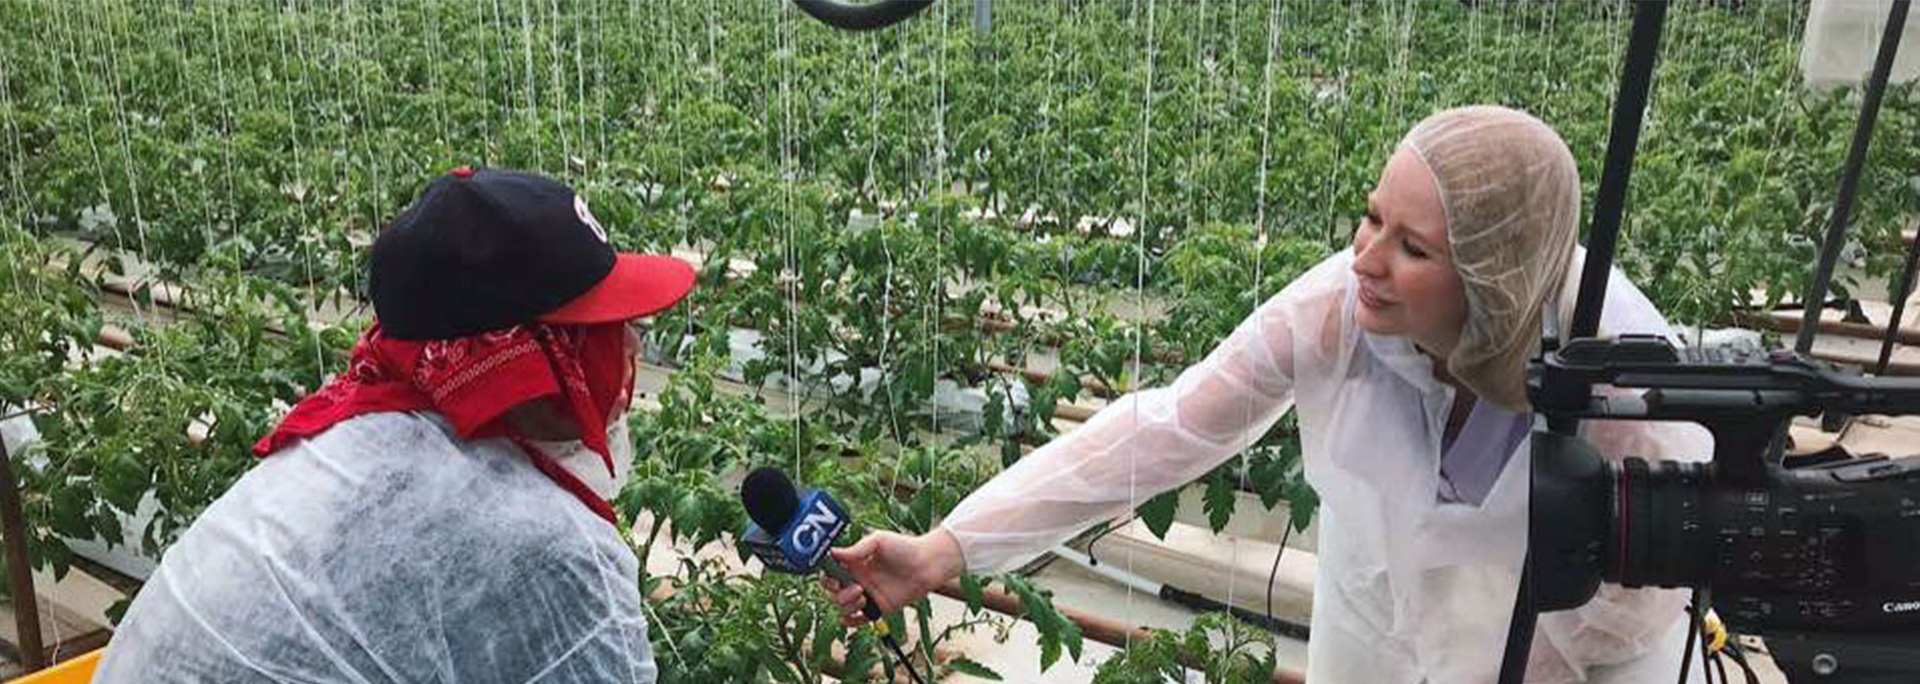 A student reporter interviews a worker outdoors in a field.